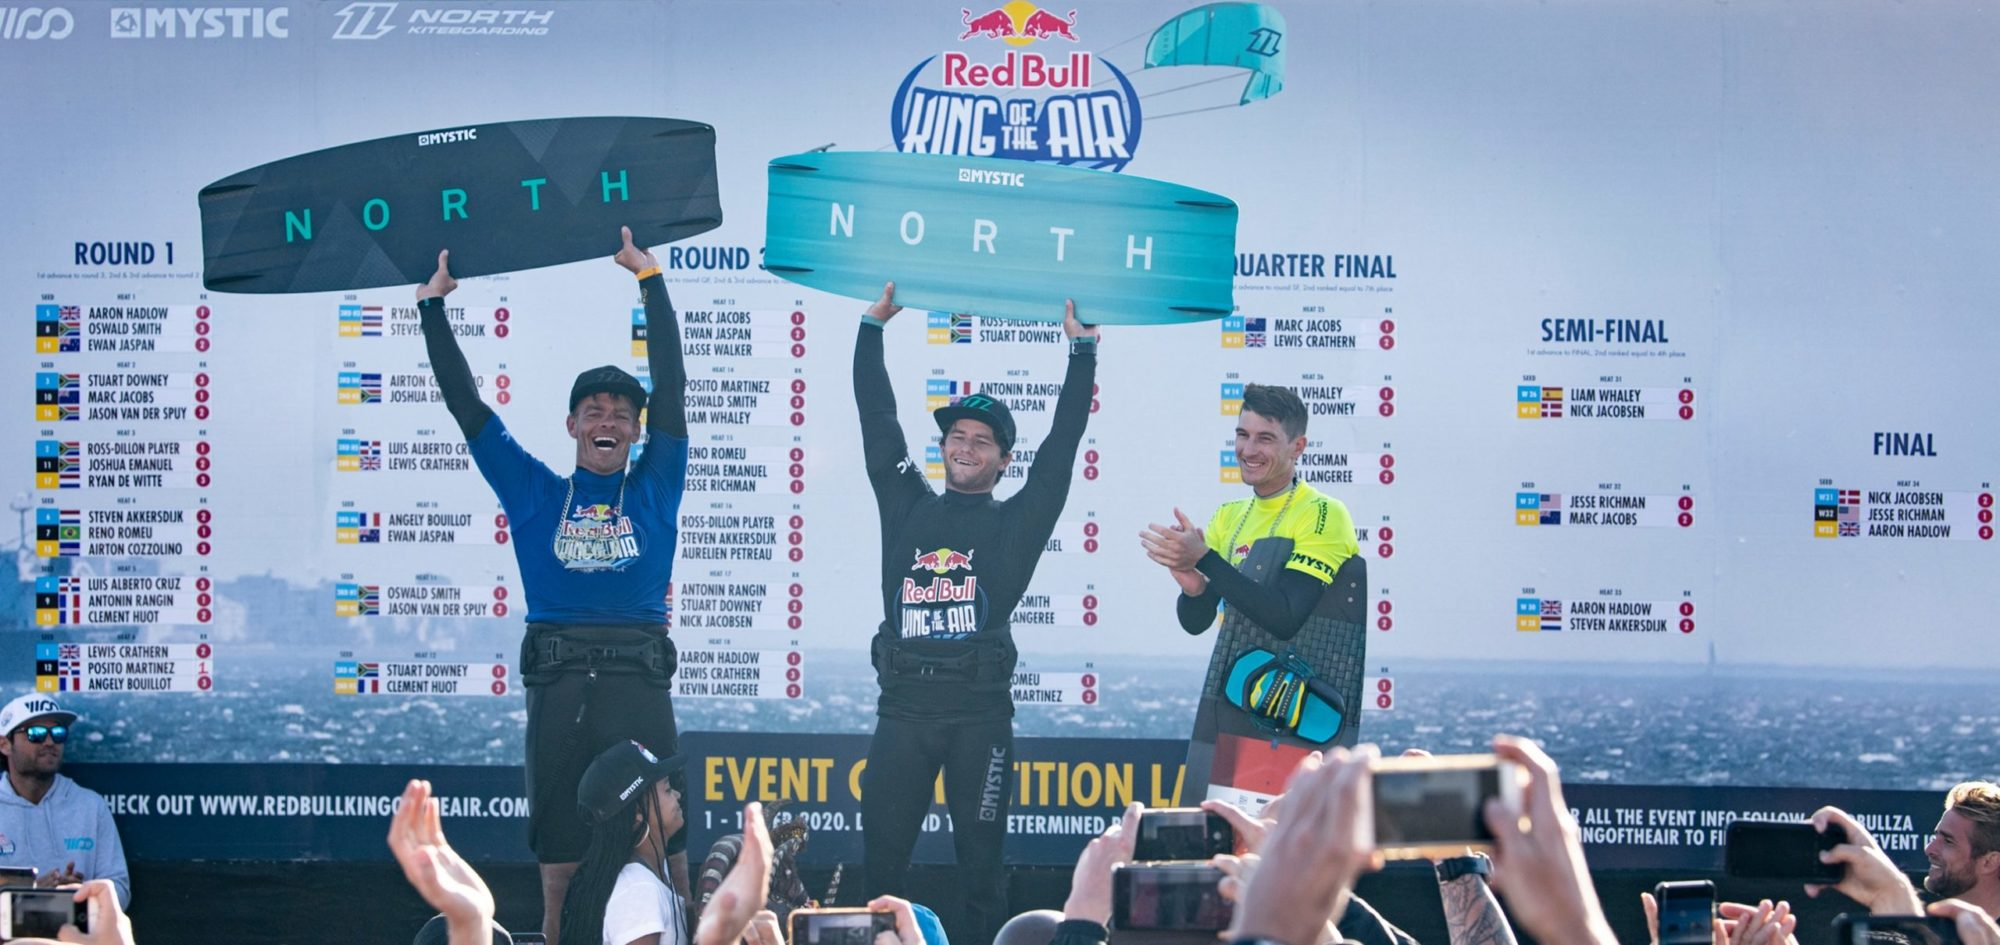 Classifica del Red Bull King Of The Air 2020